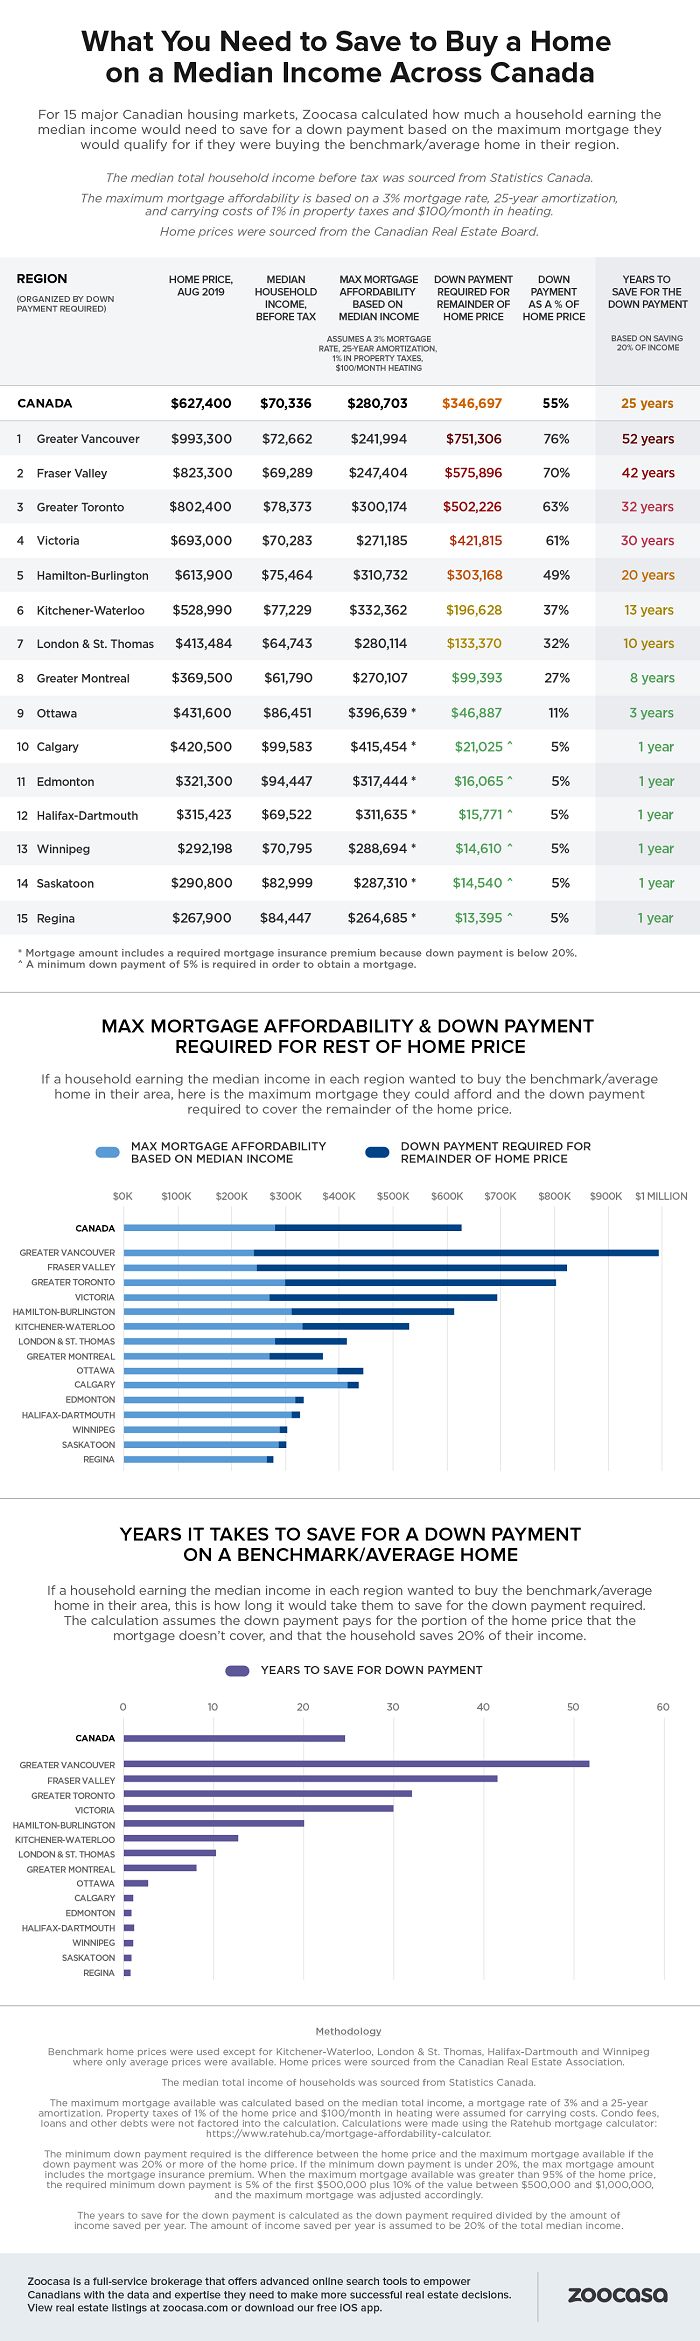 Zoocasa down payment infographic